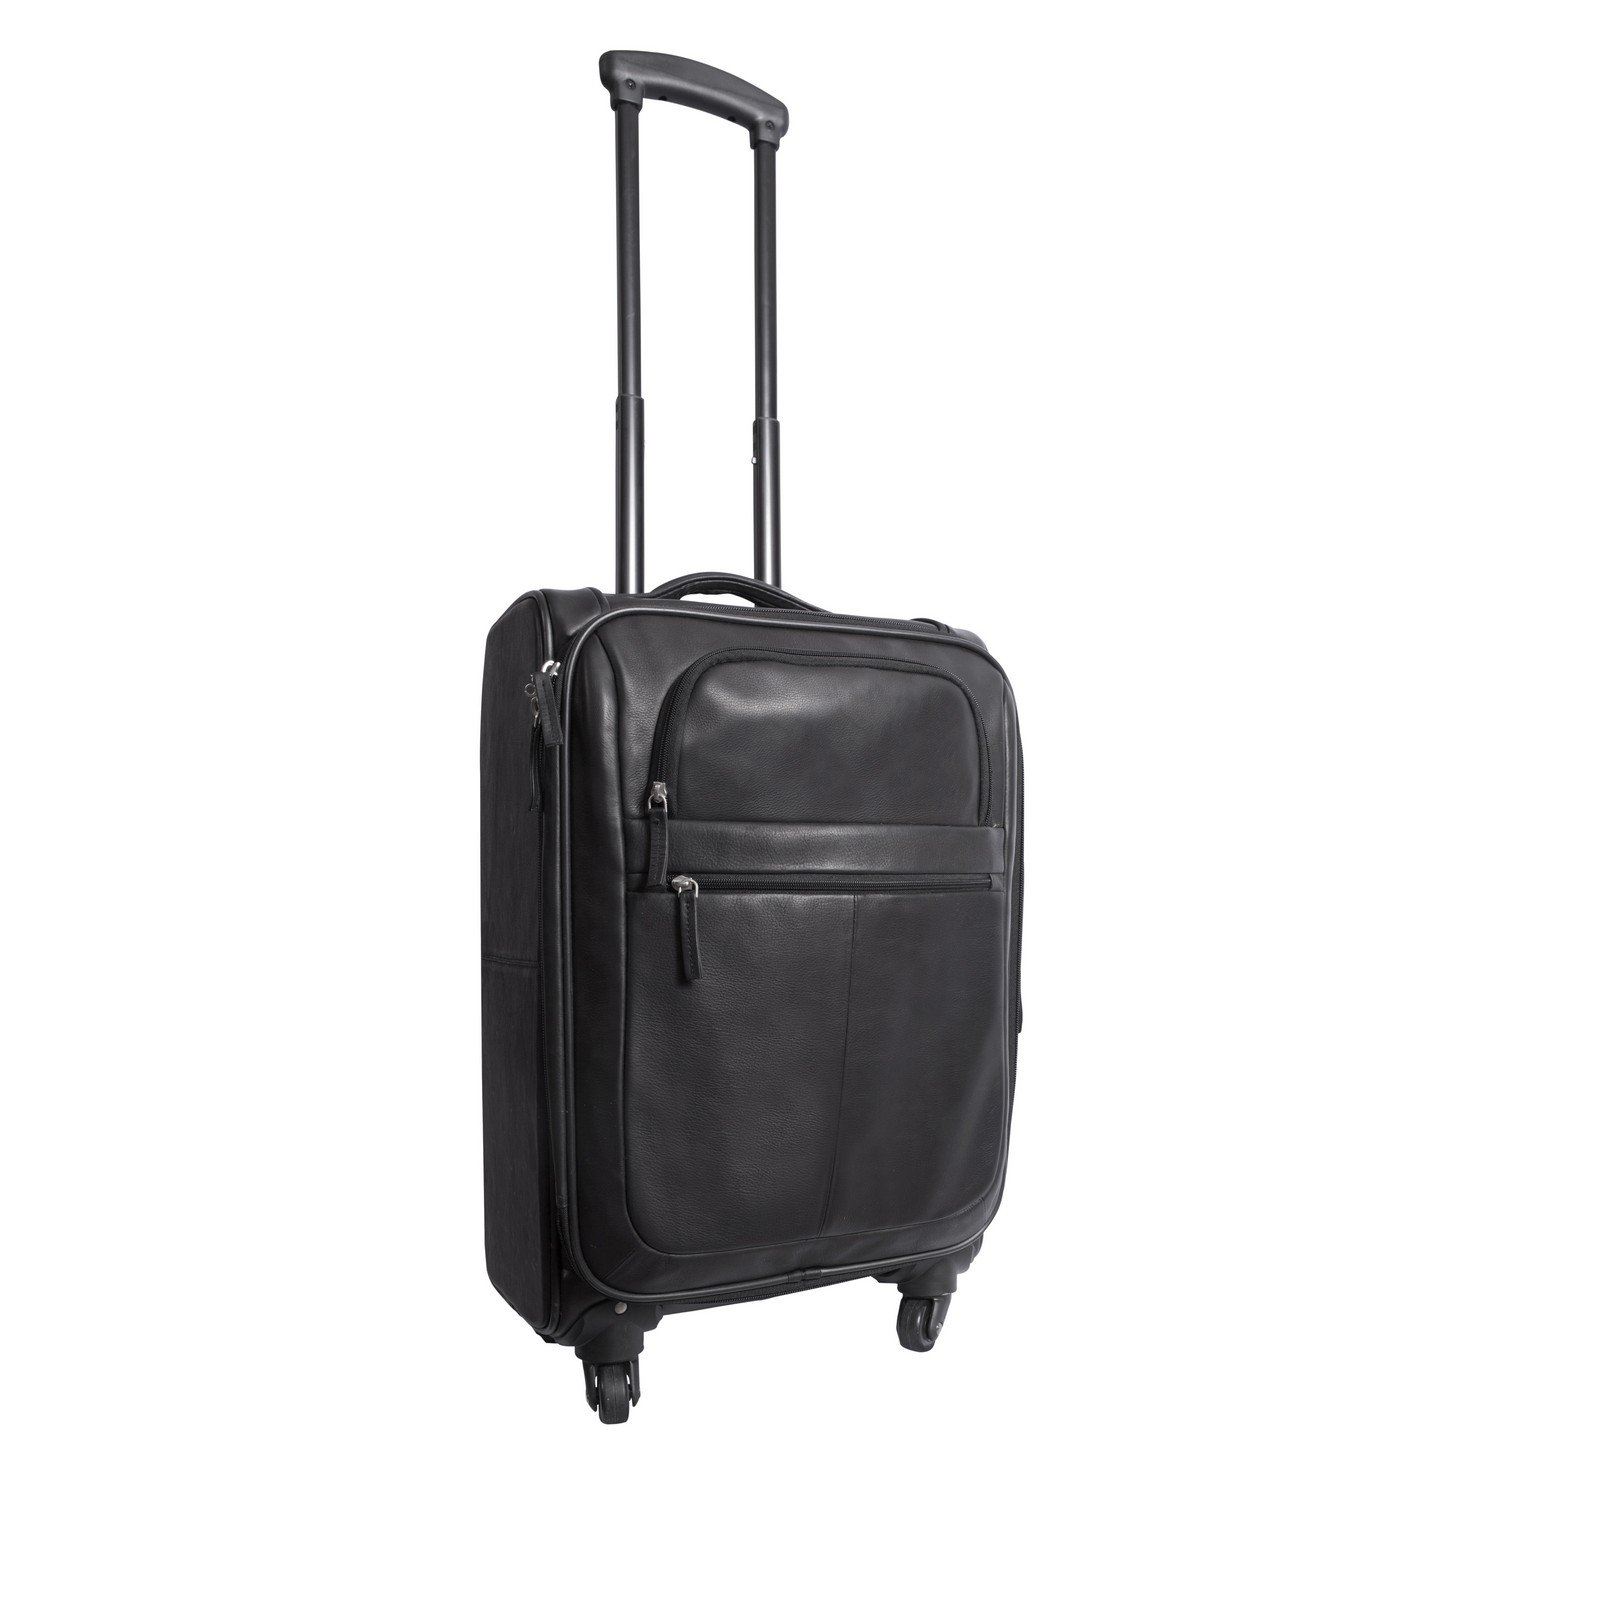 Canyon Outback Romeo Canyon 22-inch Spinner Carry-on Leather Suitcase, Black